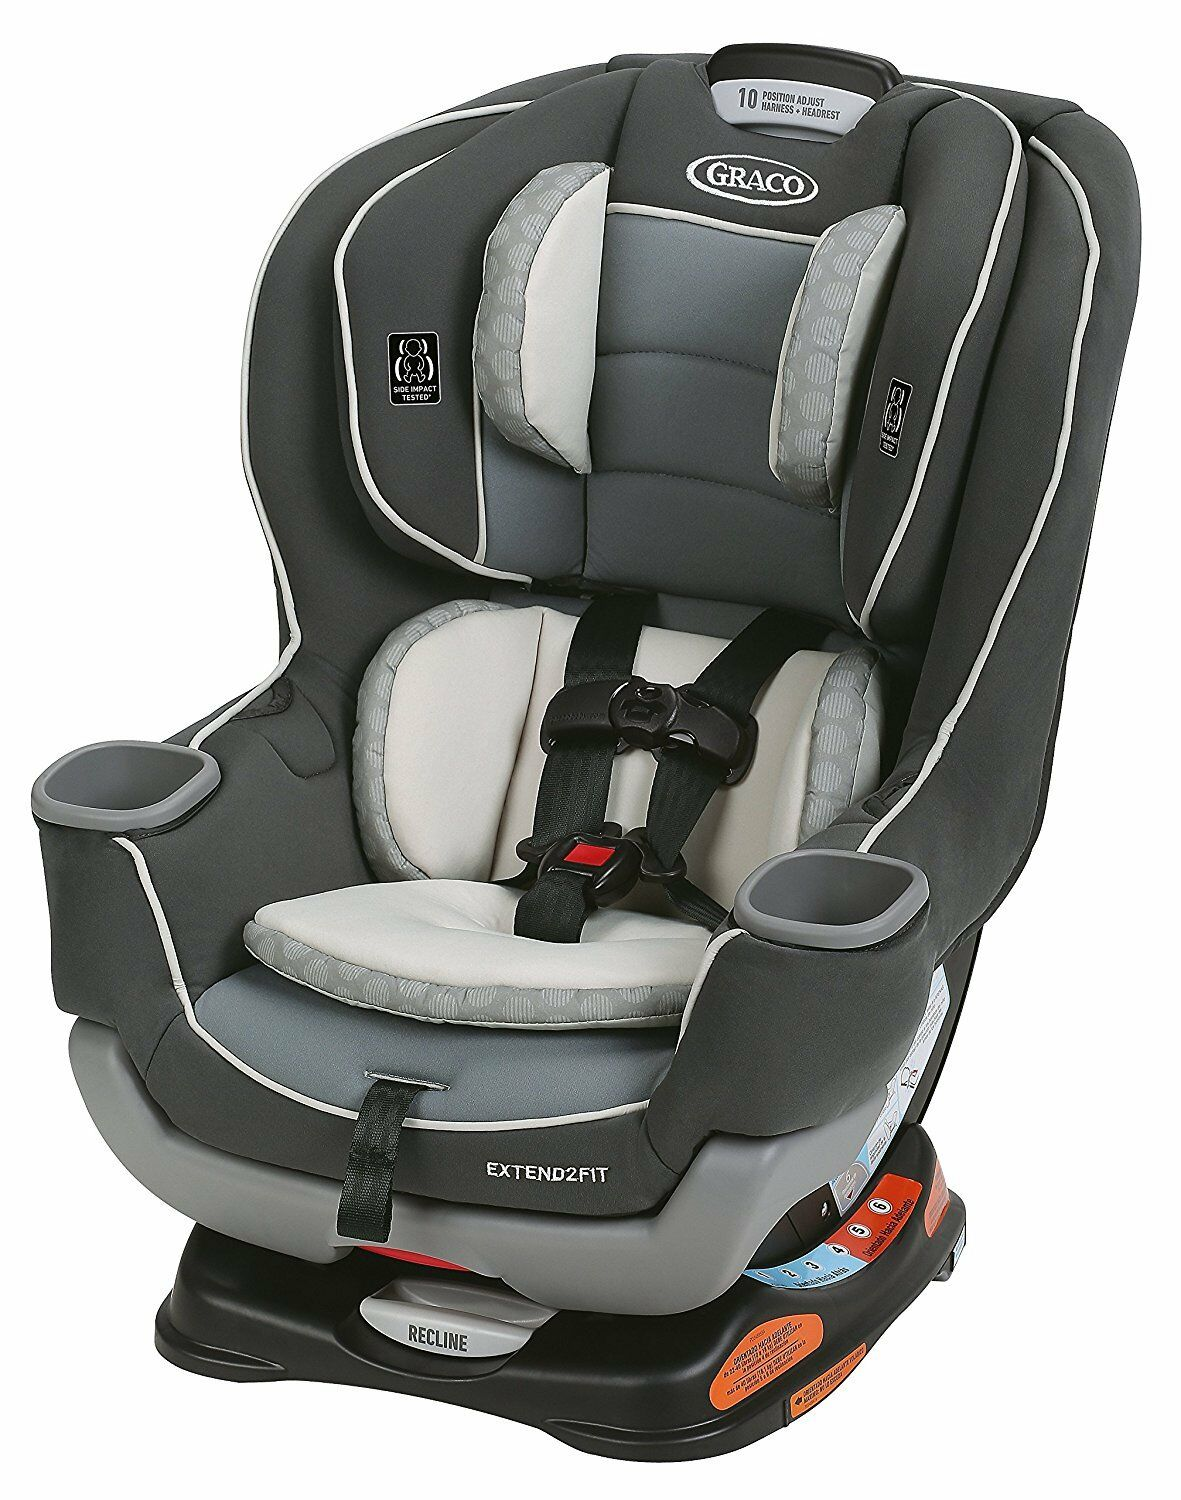 Изображение товара Graco Baby Extend2Fit Convertible Car Seat Infant Child Safety Davis NEW